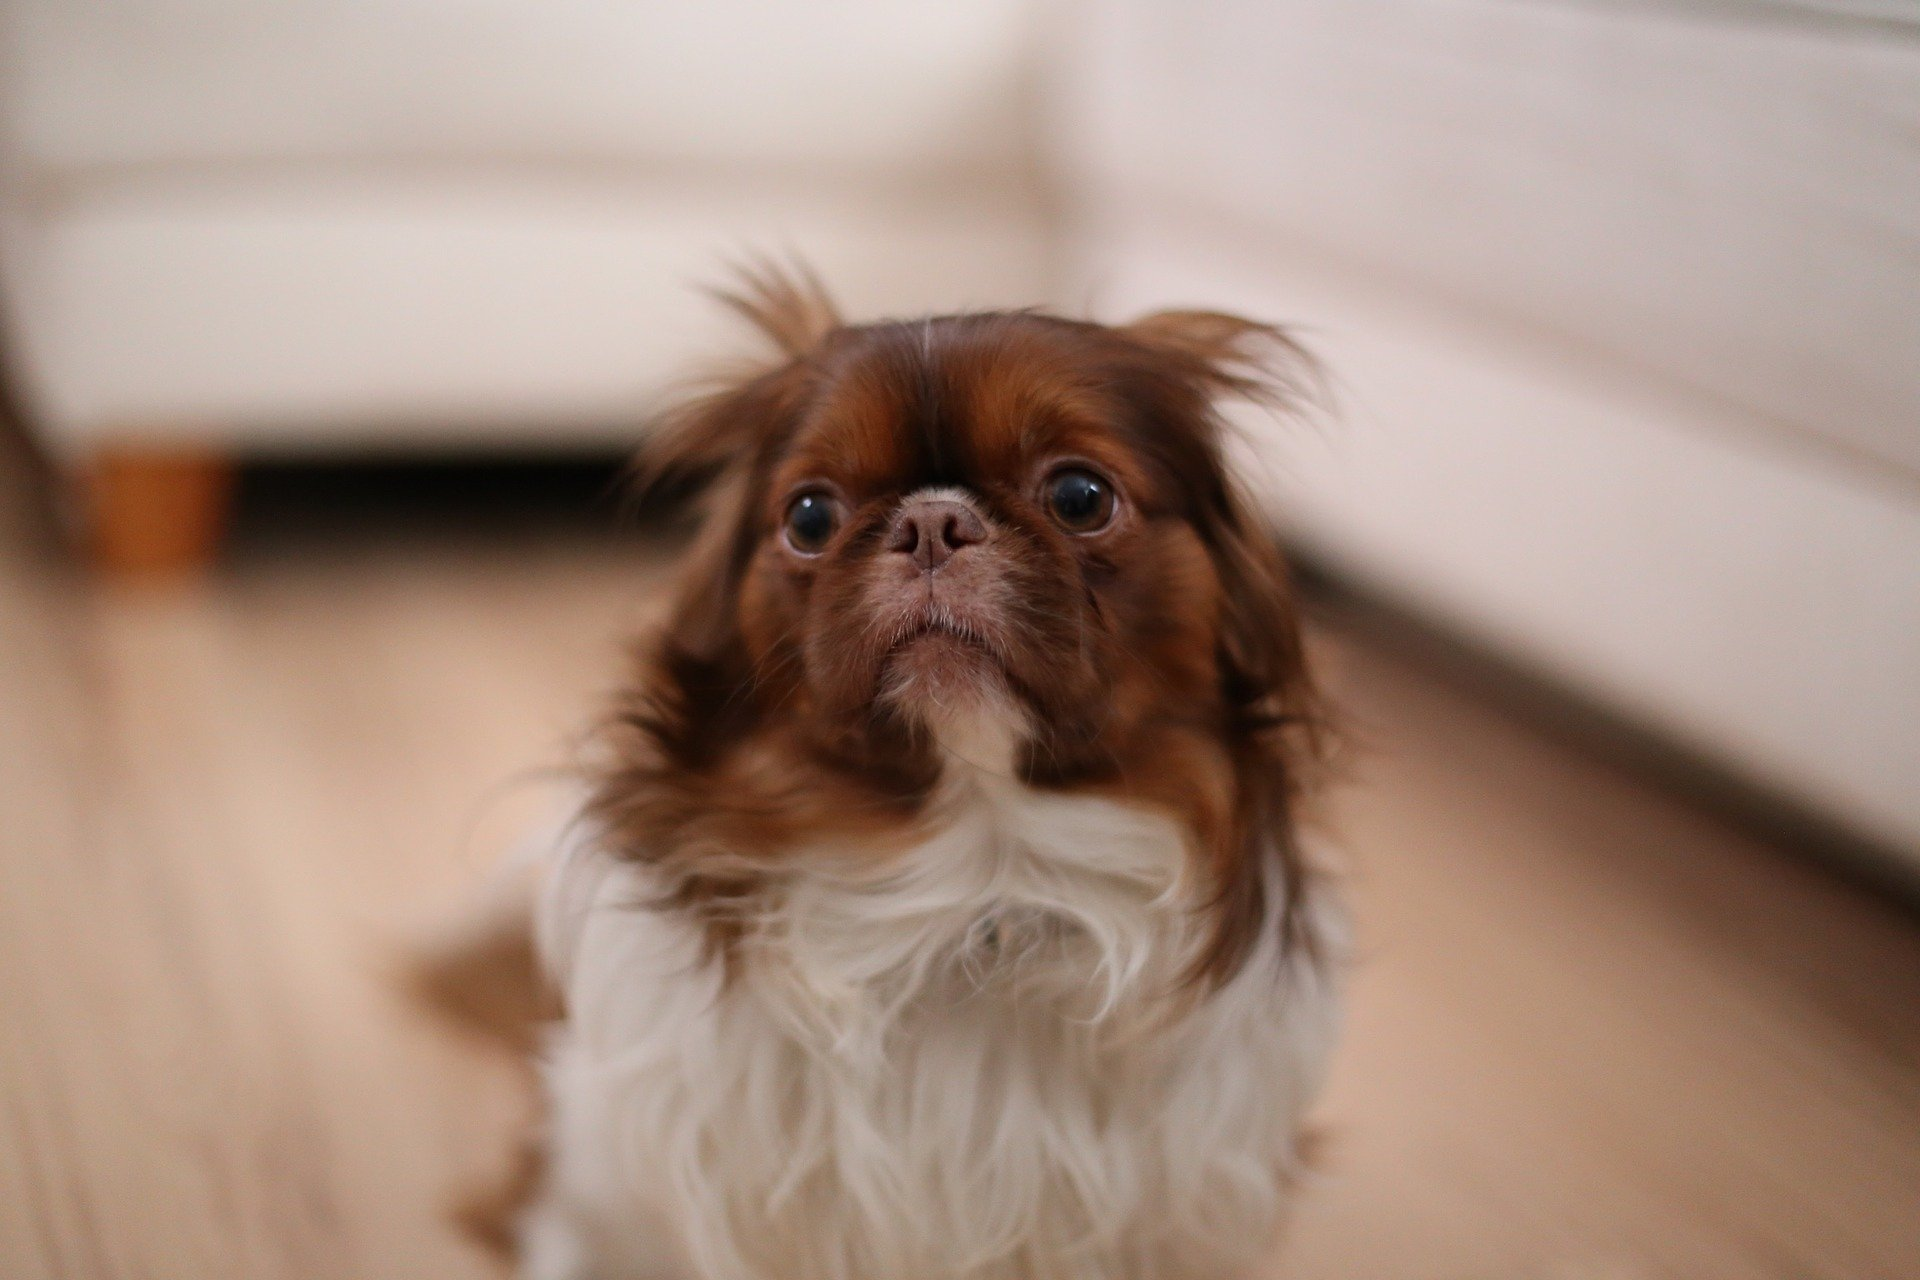 An old and scared-looking dog.   Source: Pixabay.